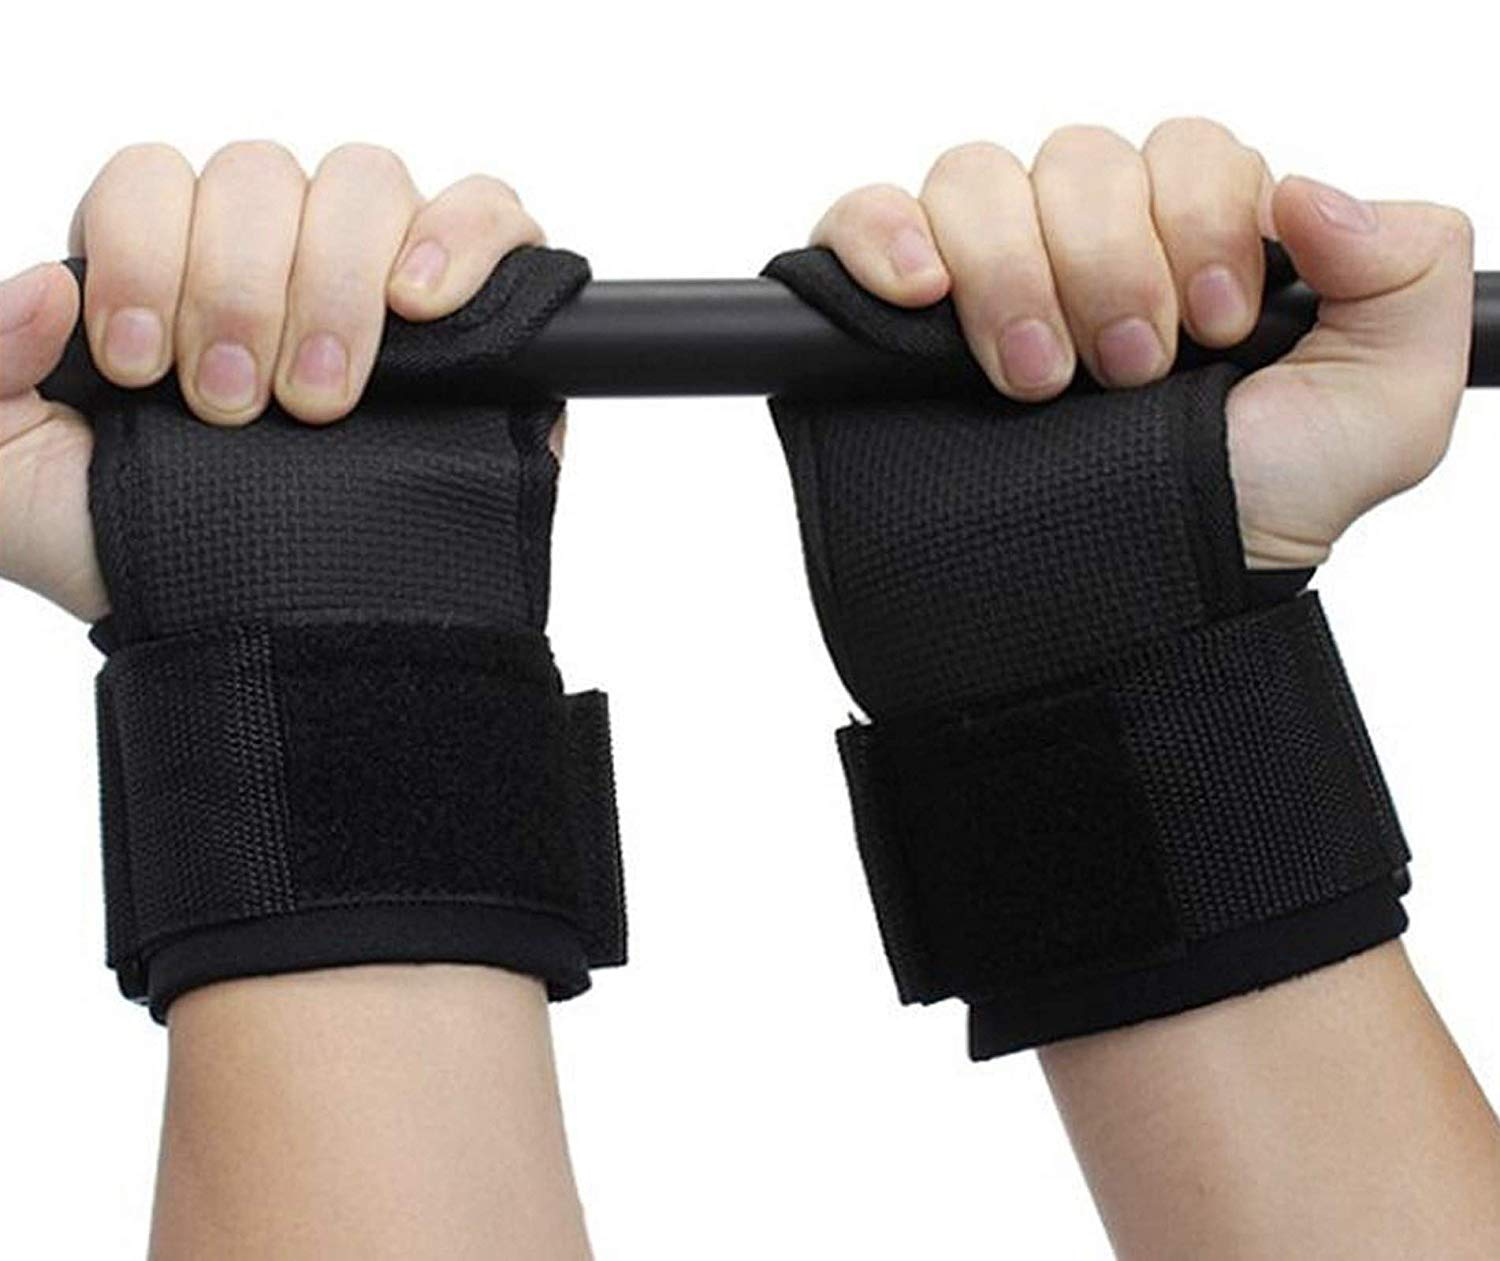 Strauss-Adjustable-Weight-Lifting-Strap-with-Palm-Protecting-Grip